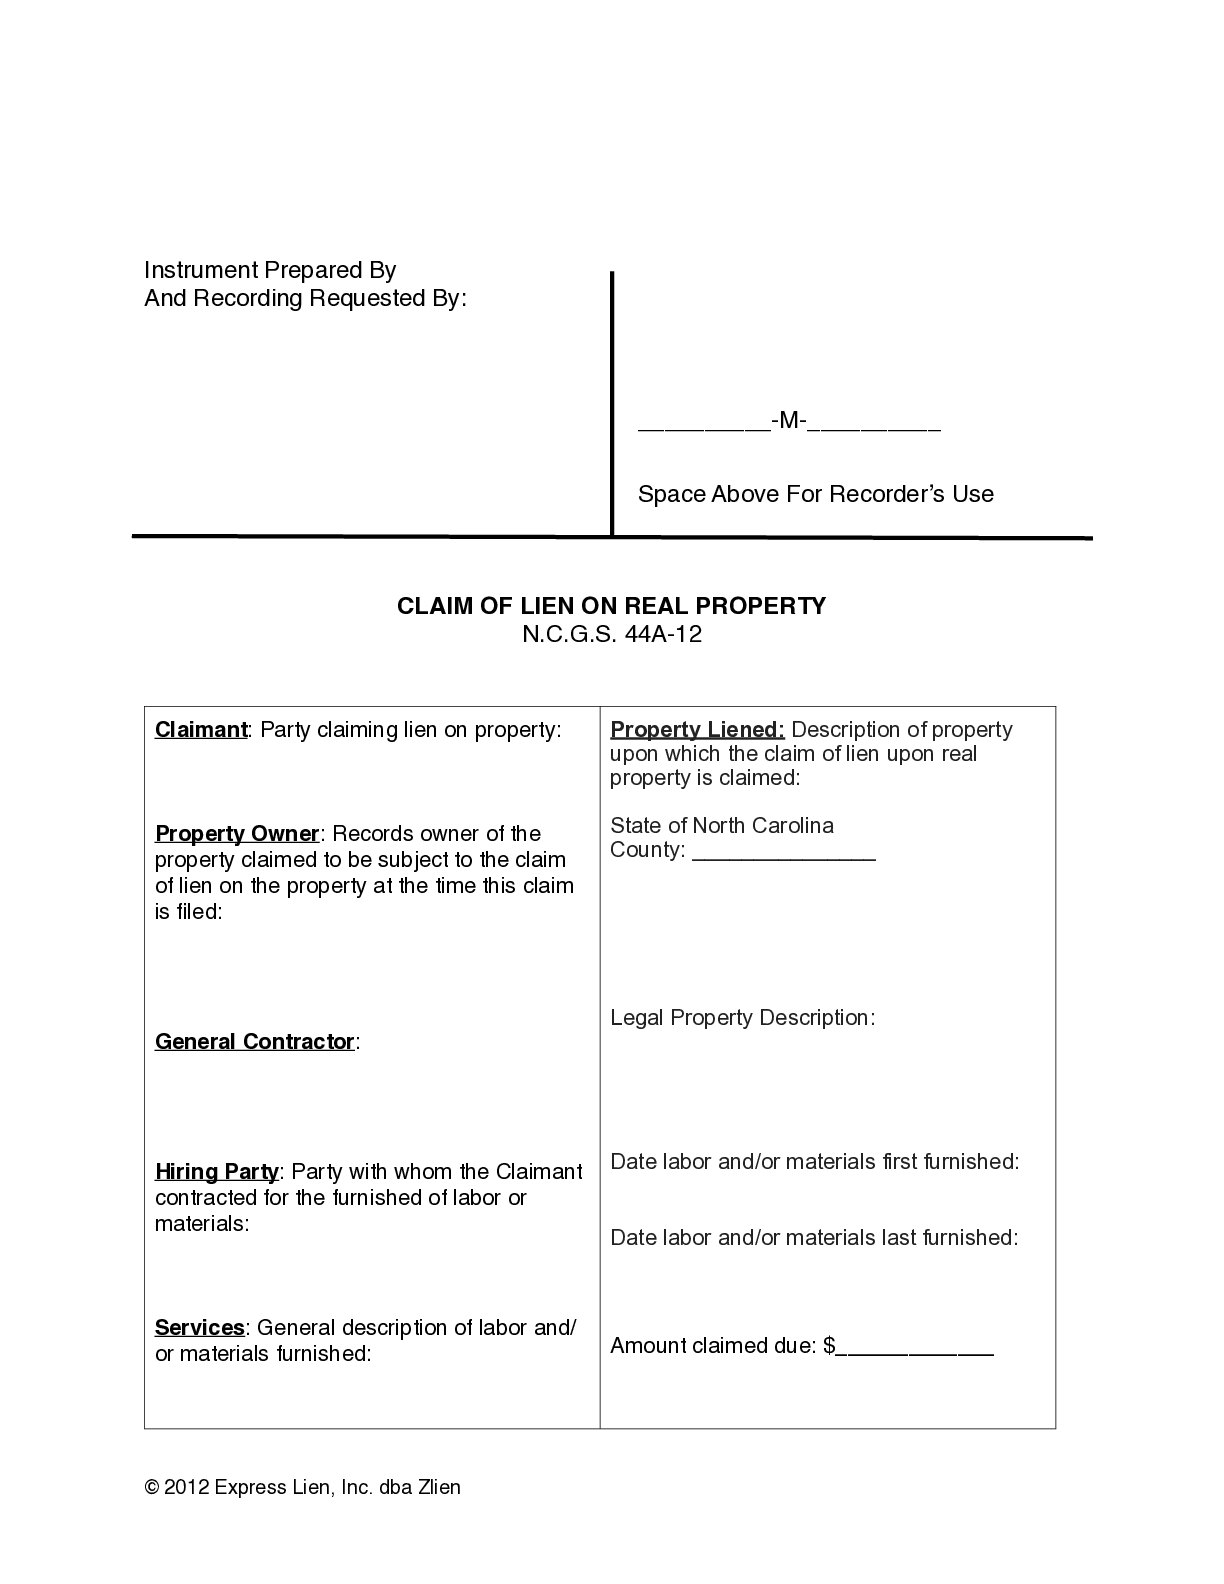 North Carolina Subcontractors Claim of Lien on Real Property Form